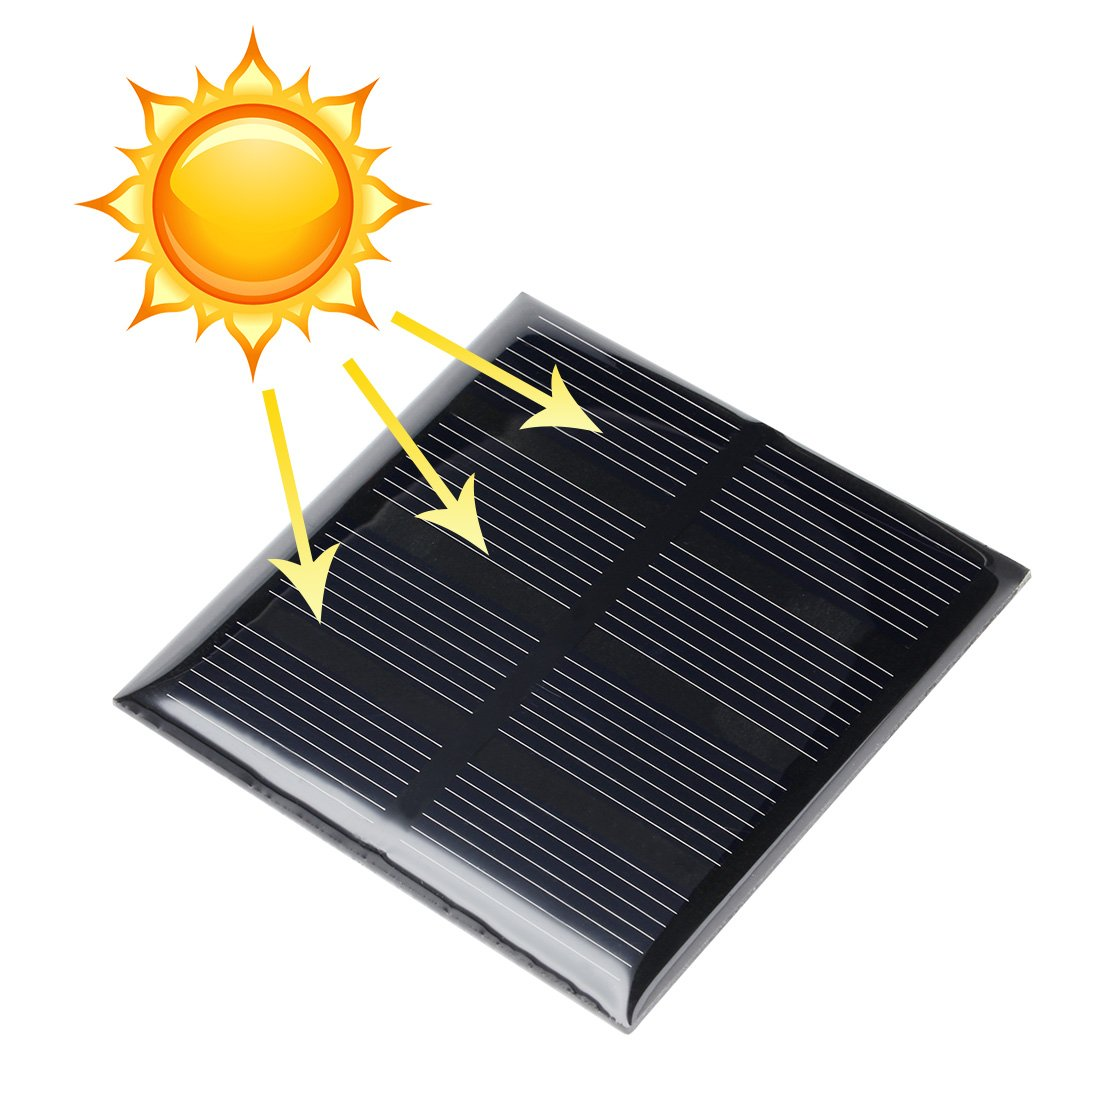 uxcell 5Pcs 2V 160mA Poly Mini Solar Cell Panel Module DIY for Phone Light Toys Charger 60mm x 60mm